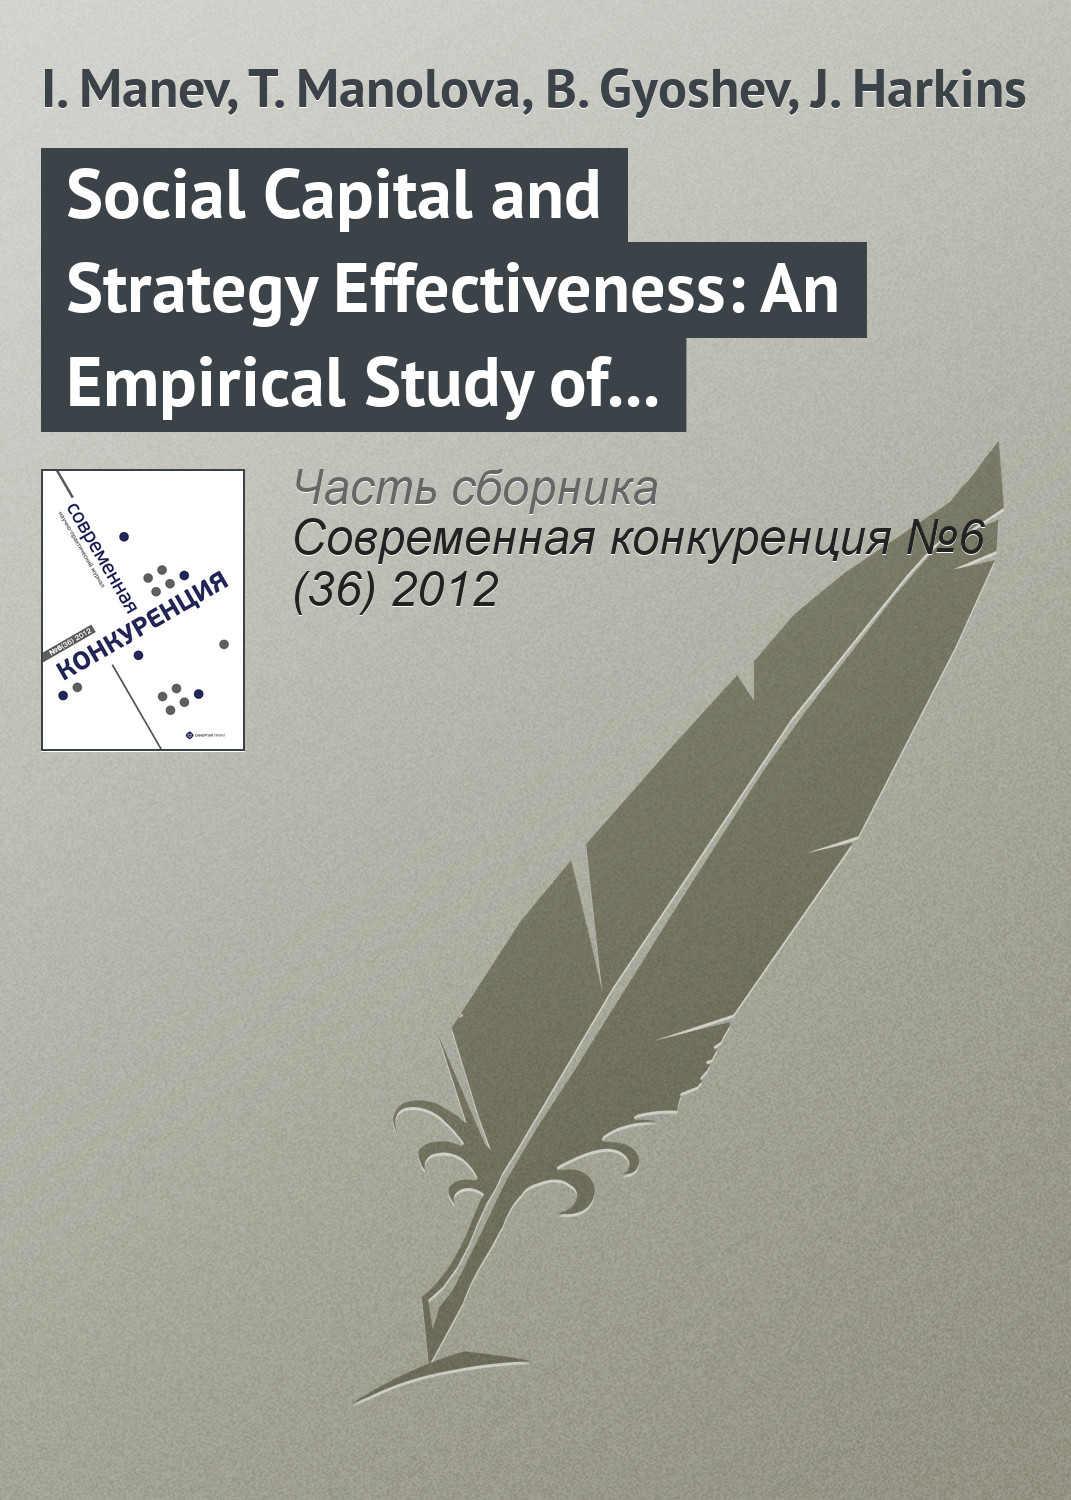 I. Manev Social Capital and Strategy Effectiveness: An Empirical Study of Entrepreneurial Ventures in a Transition Economy silvia tony power performance multimedia storytelling for journalism and public relations